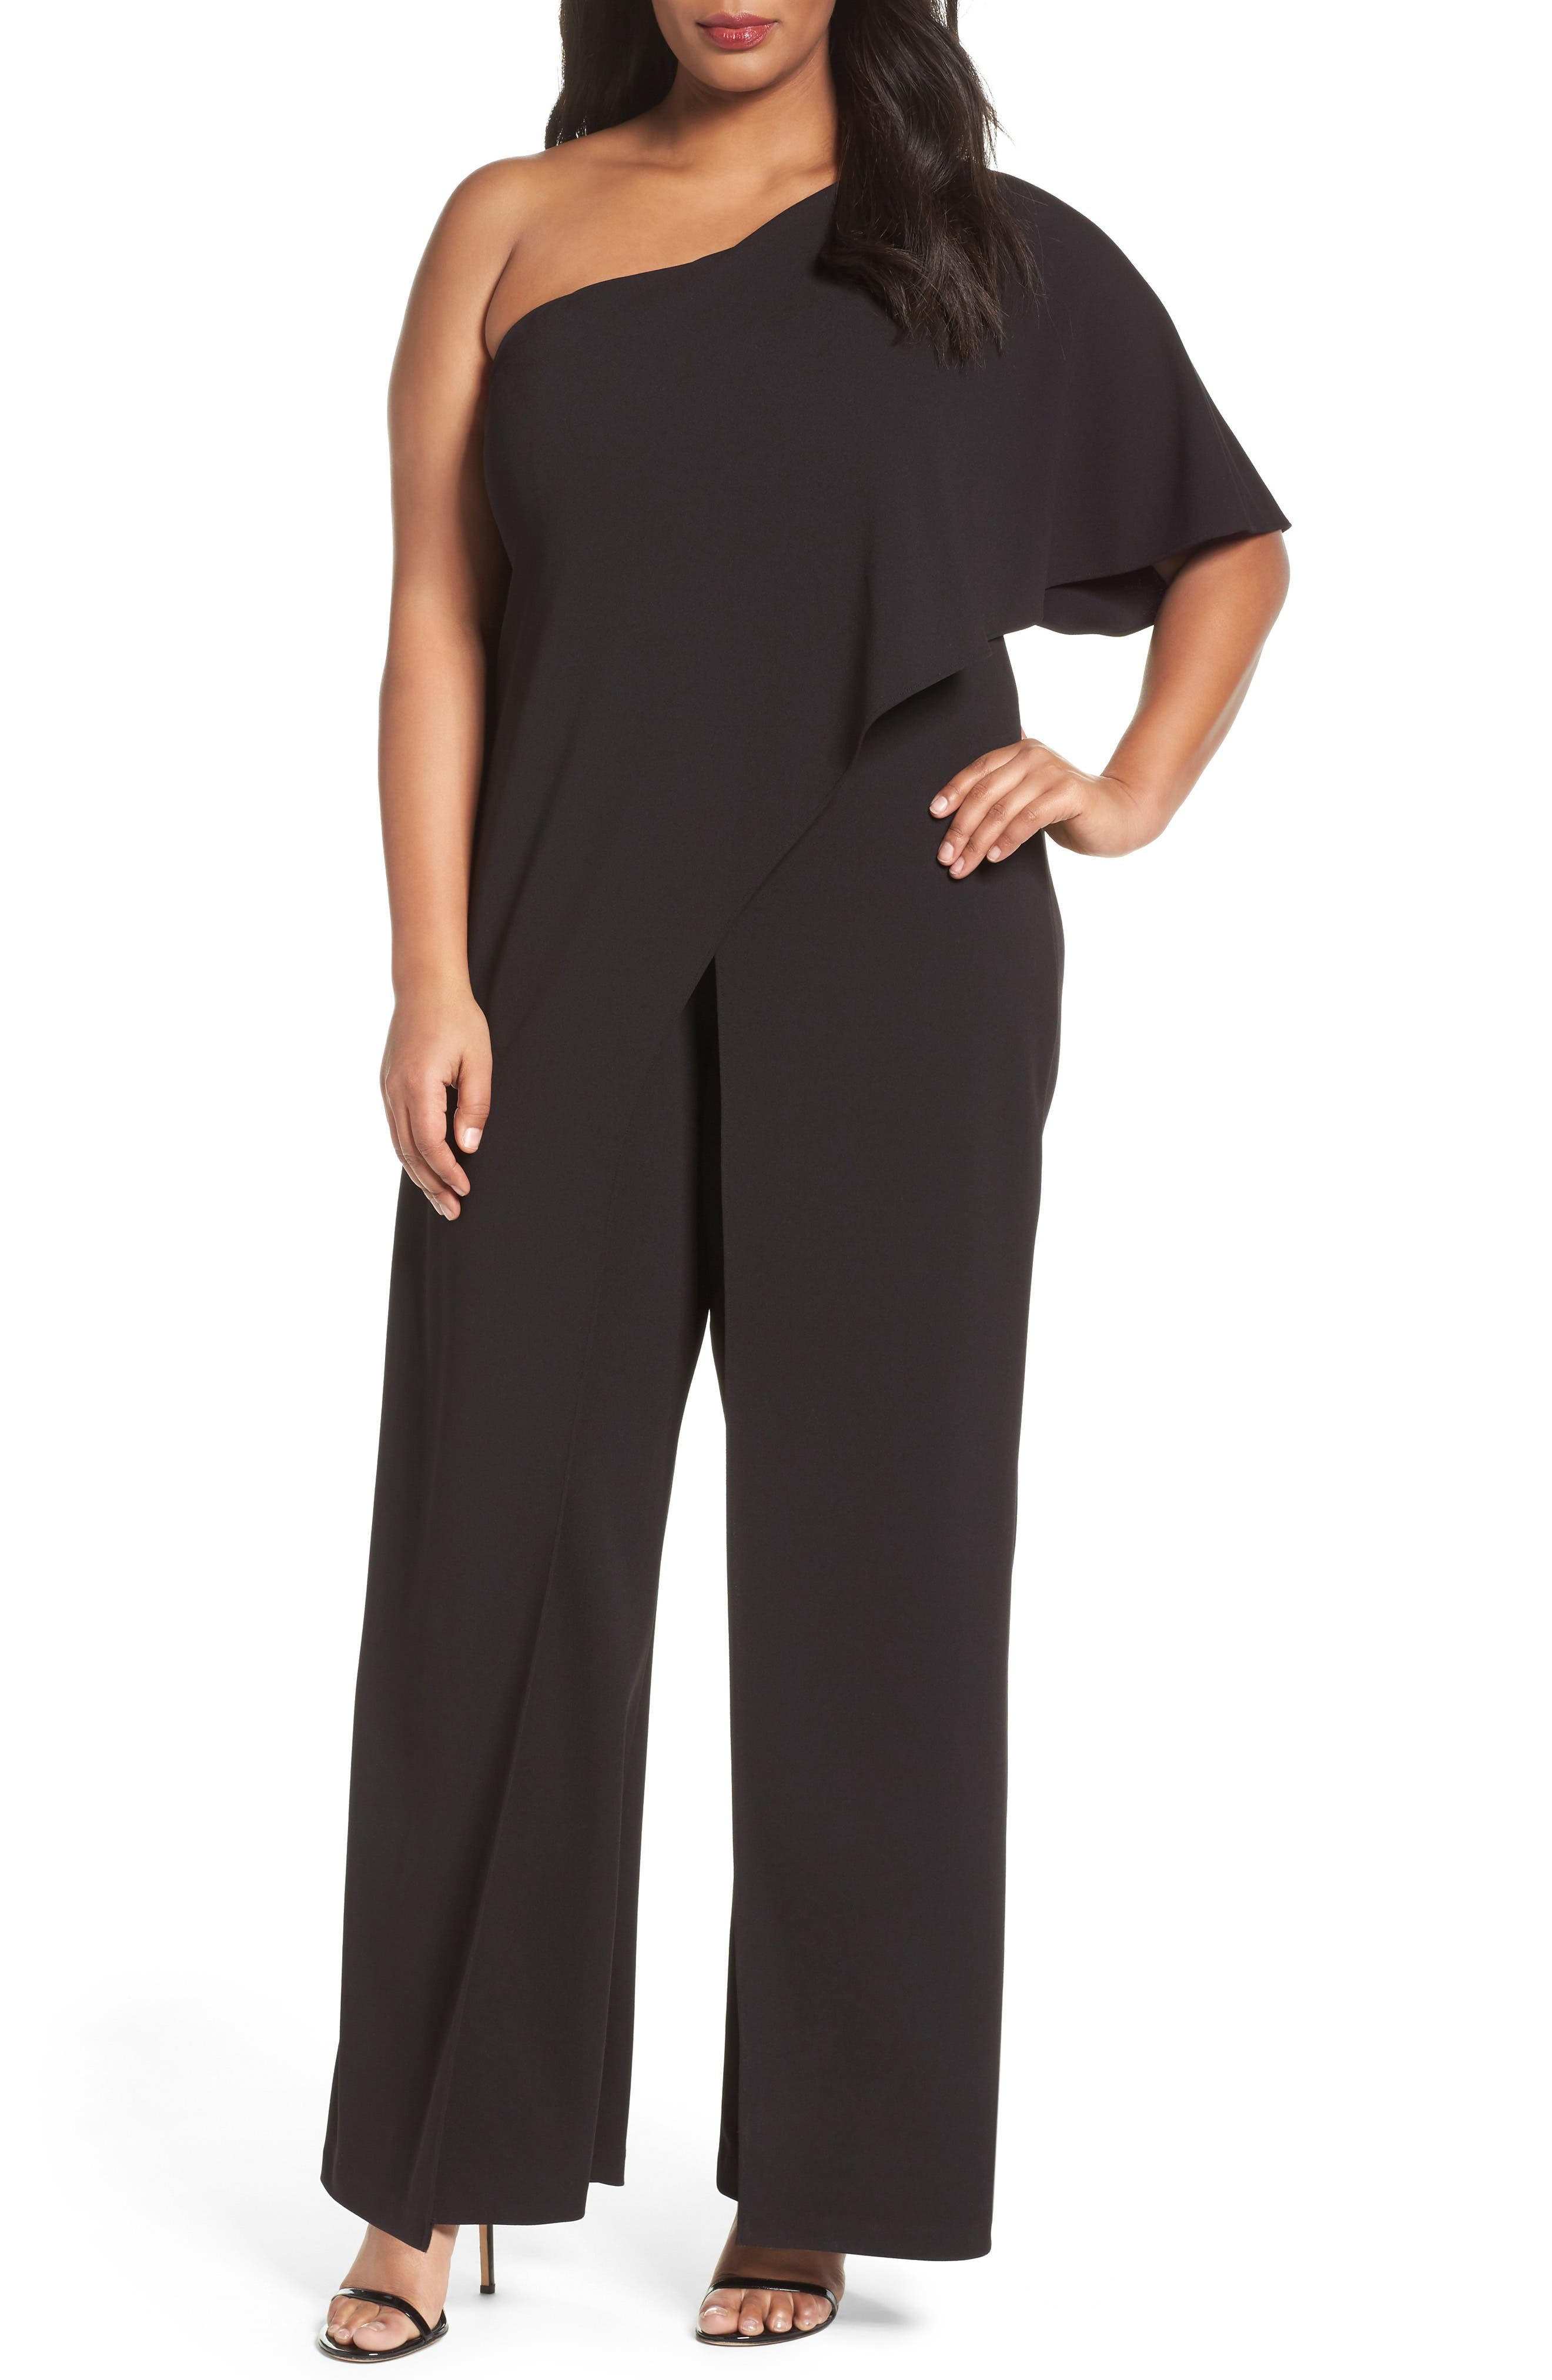 ADRIANNA PAPELL Plus Size Draped One-Shoulder Jumpsuit in Black